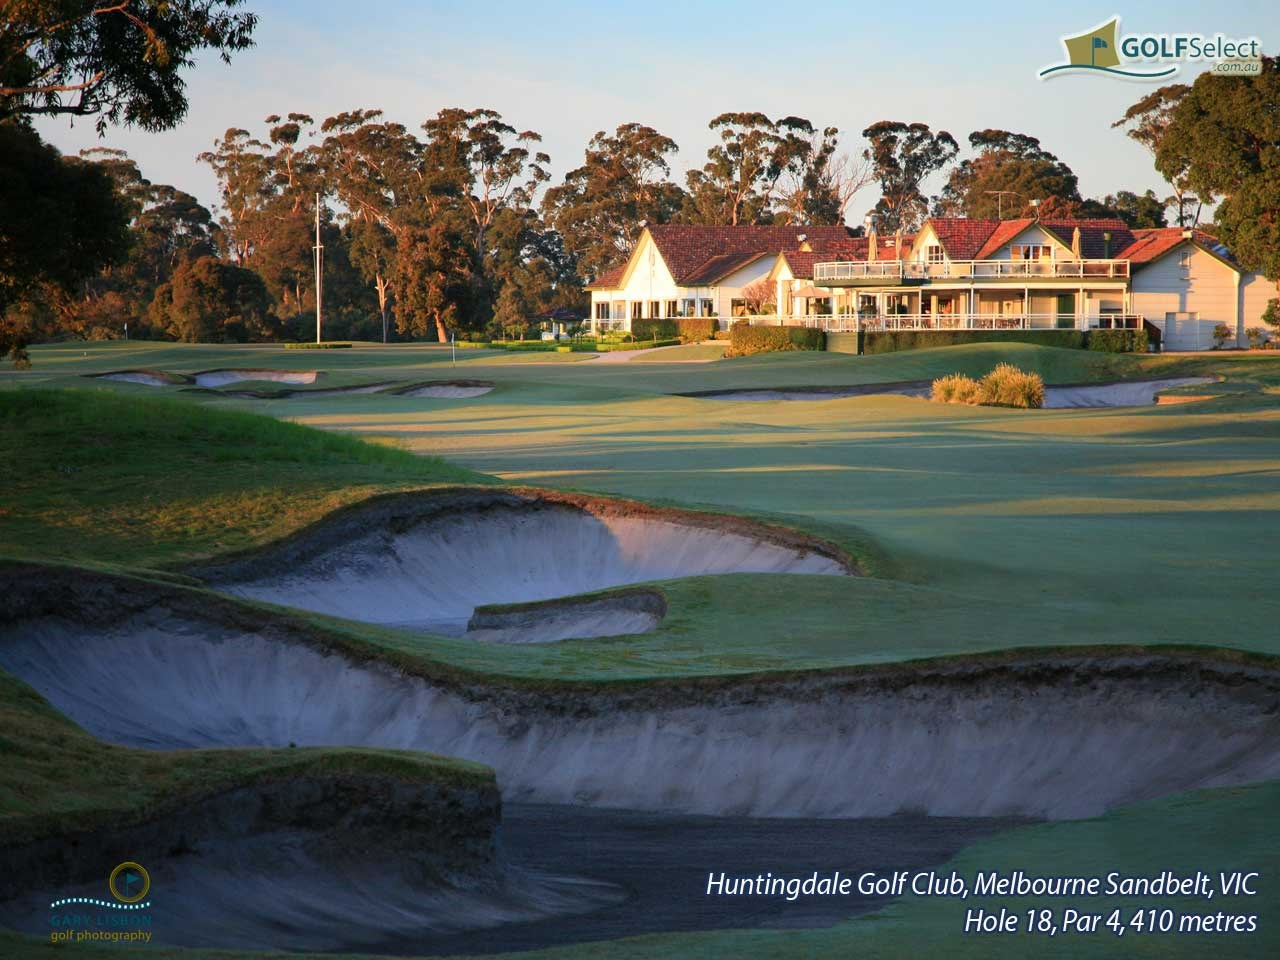 Huntingdale Golf Club Hole 18, Par 4, 410 metres